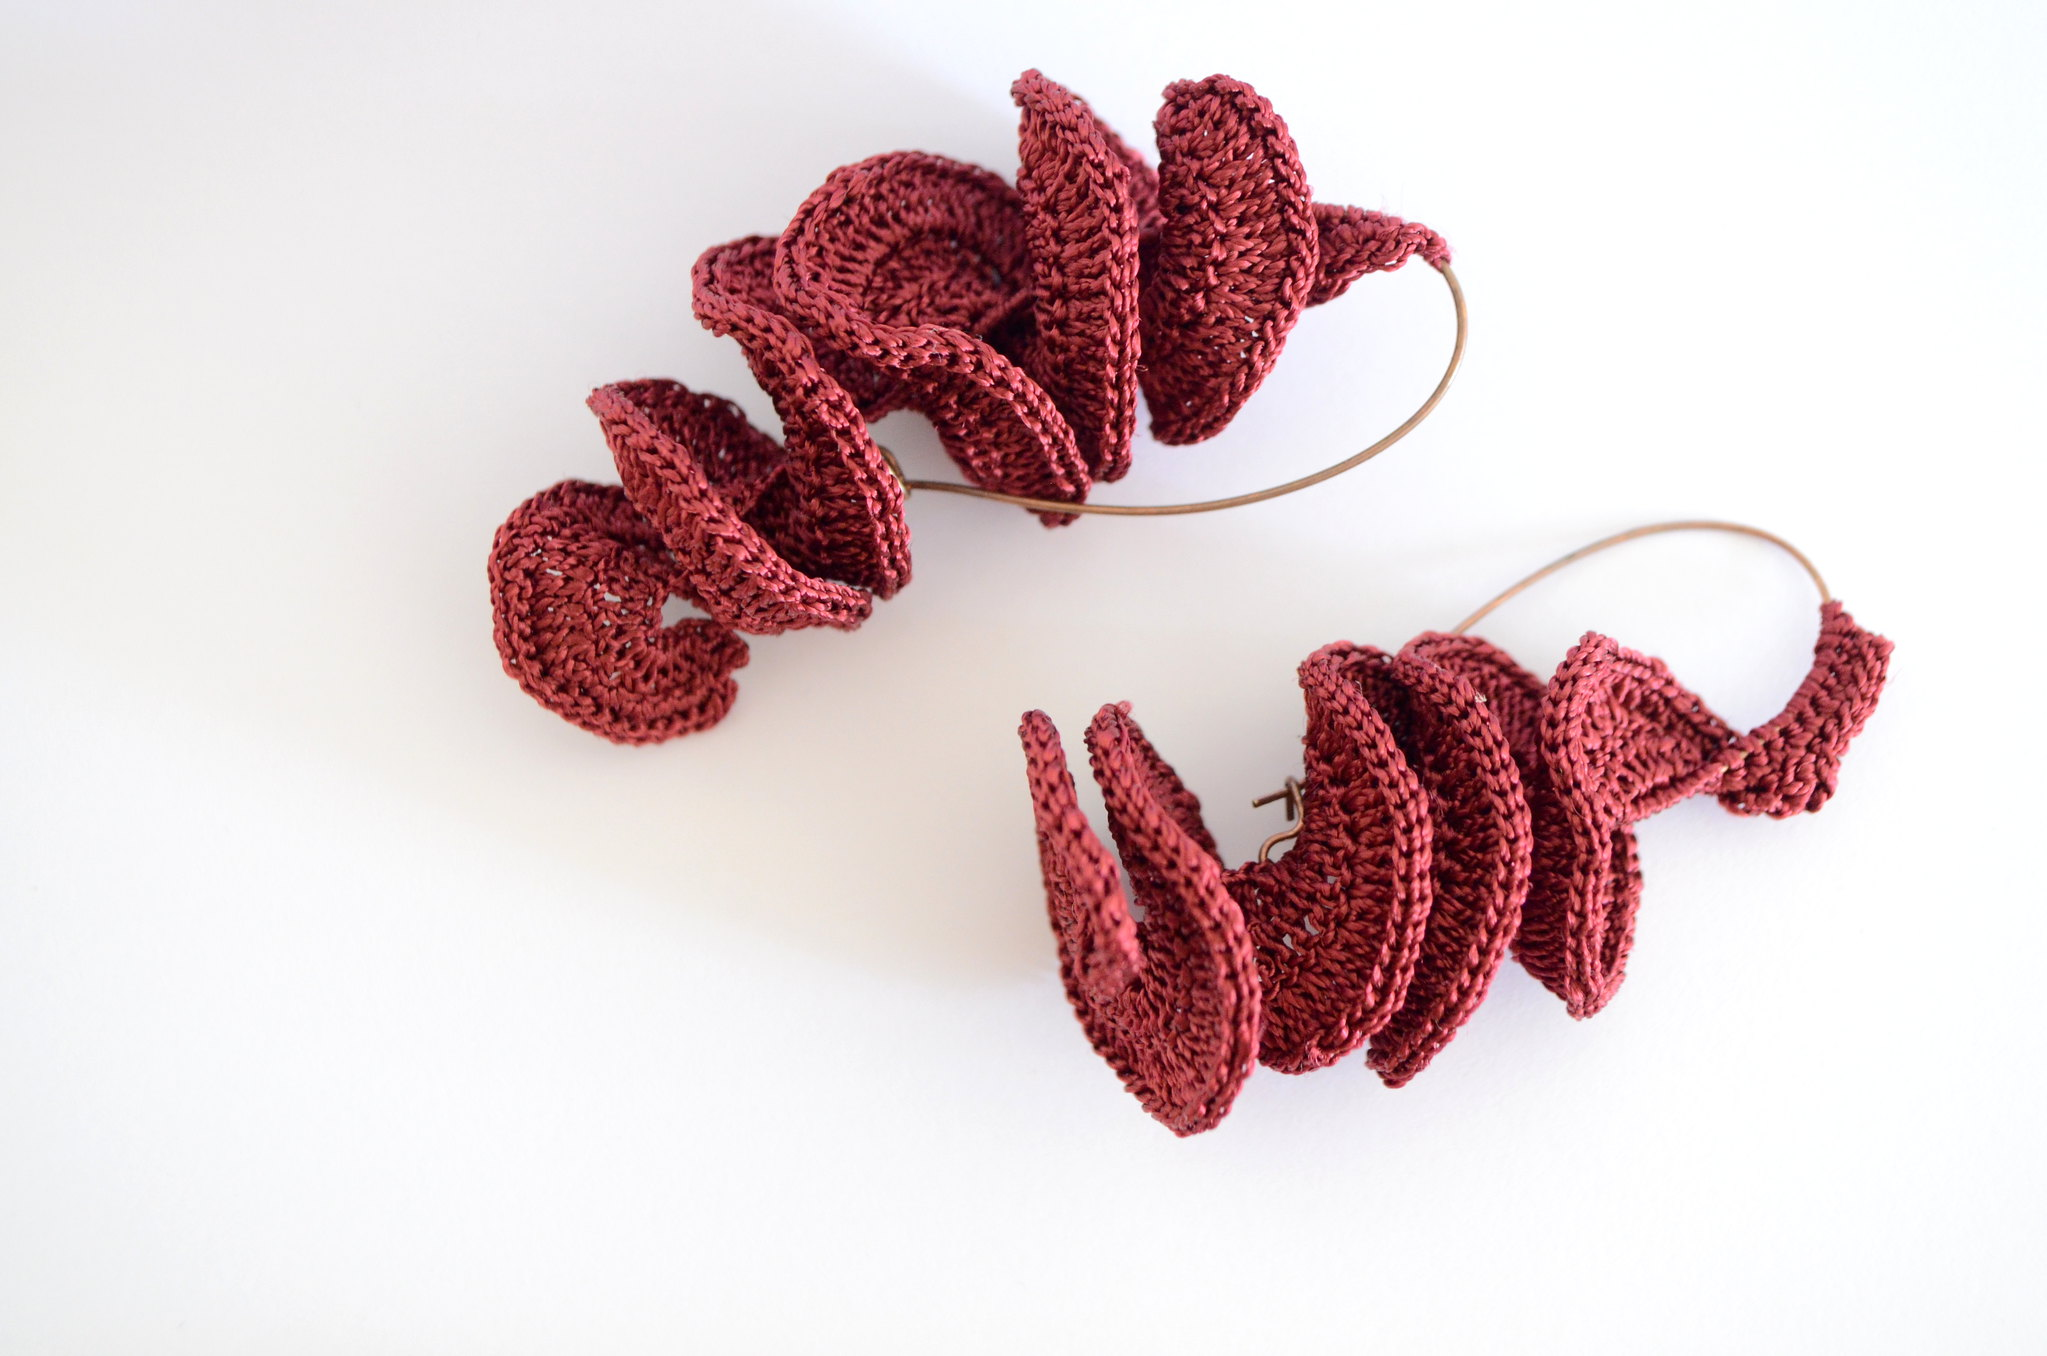 Crochet earrings - Spiral